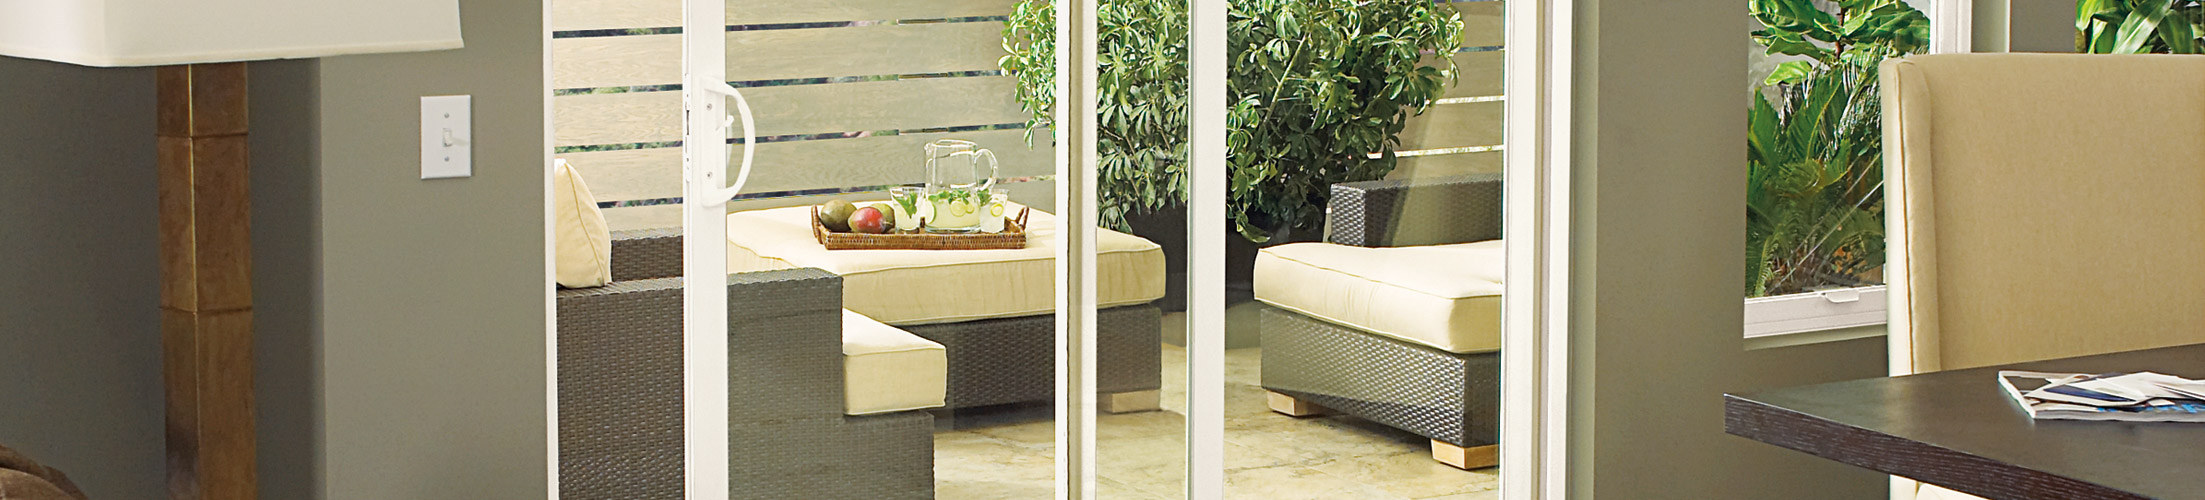 Integrity all ultrex sliding patio door